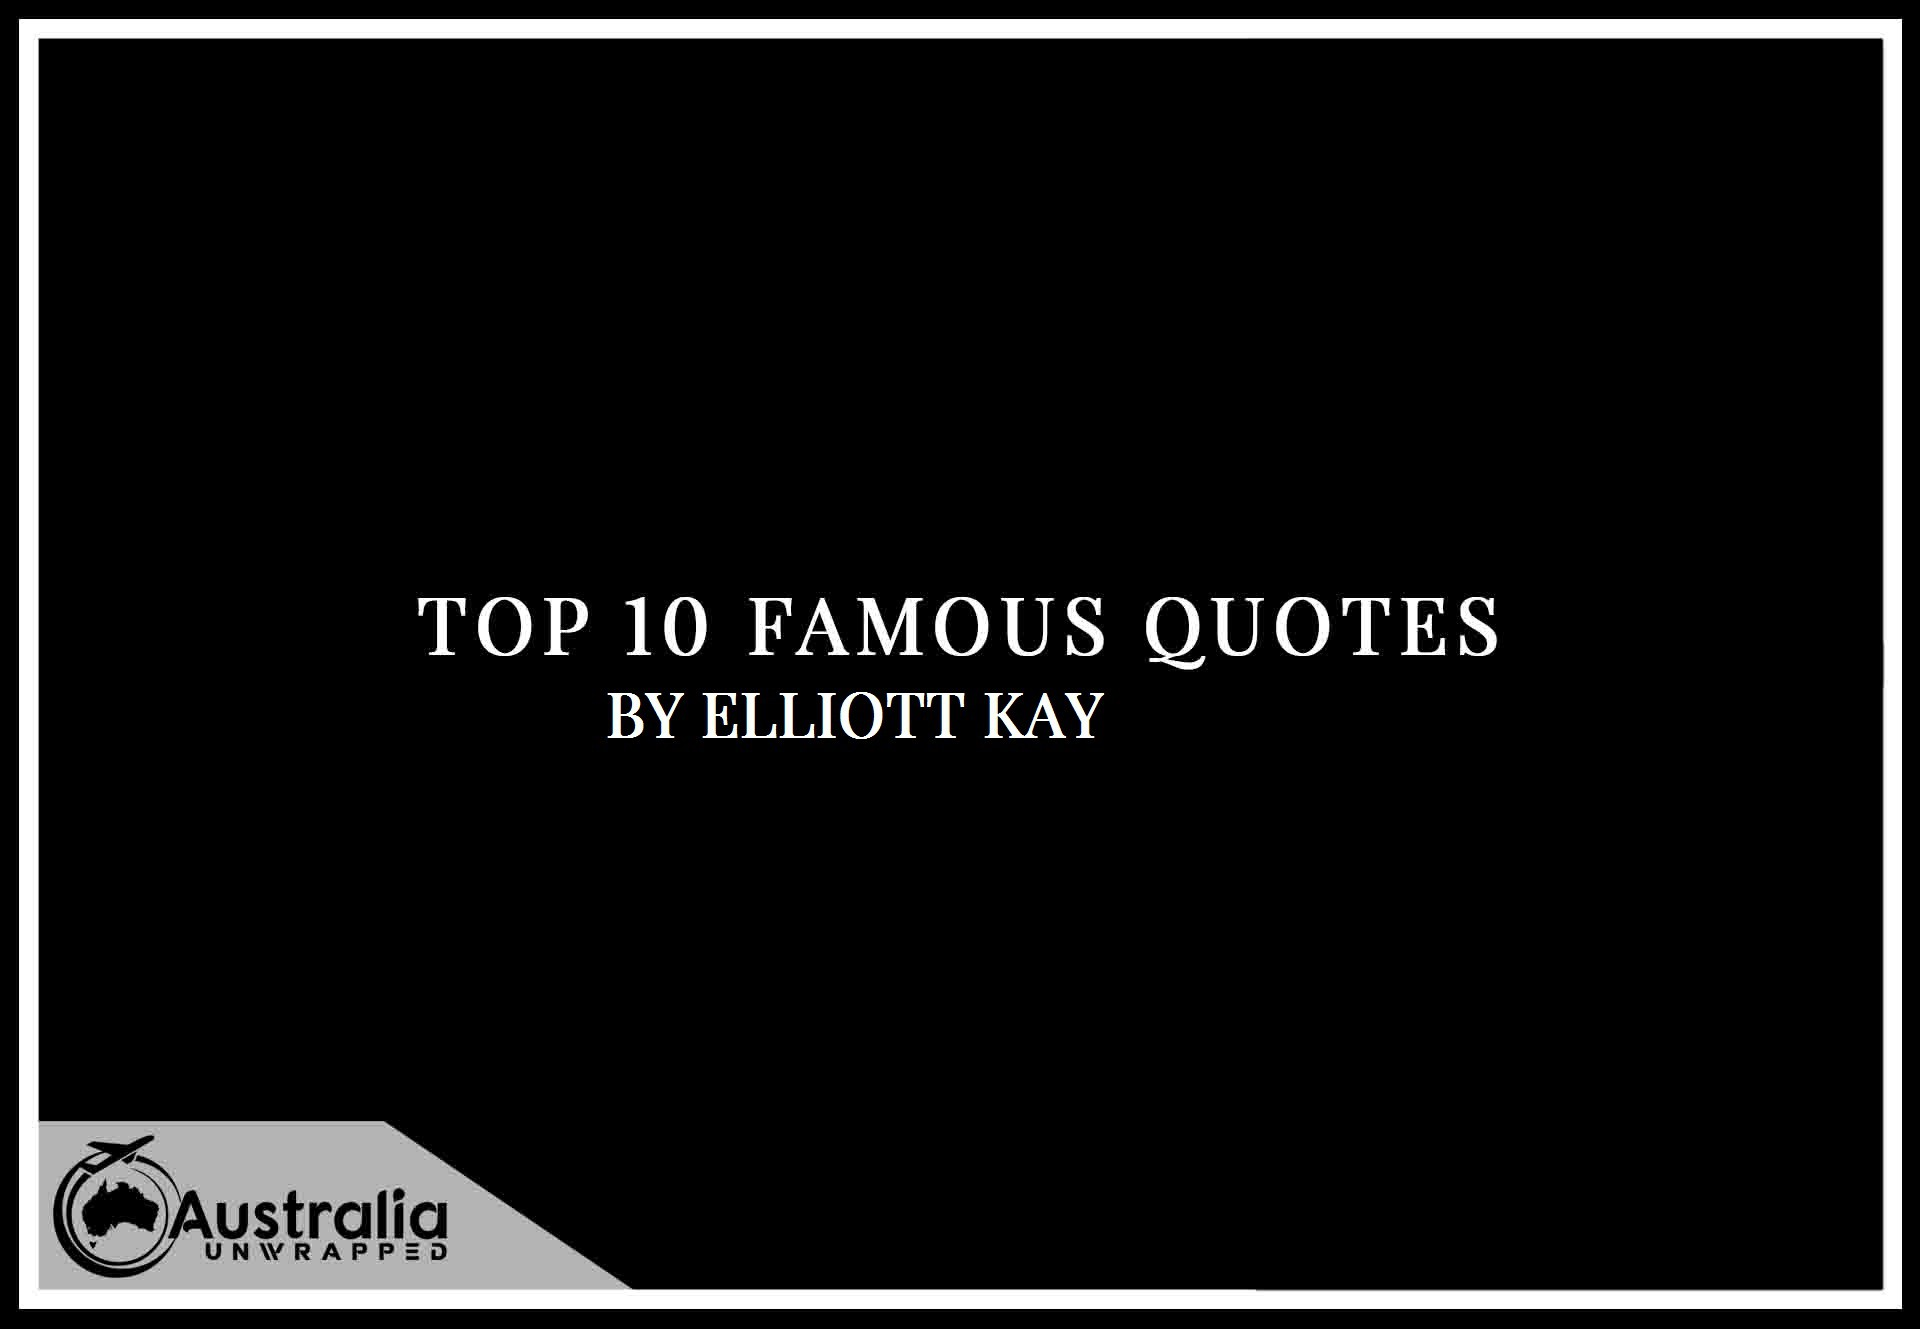 Elliott Kay's Top 10 Popular and Famous Quotes